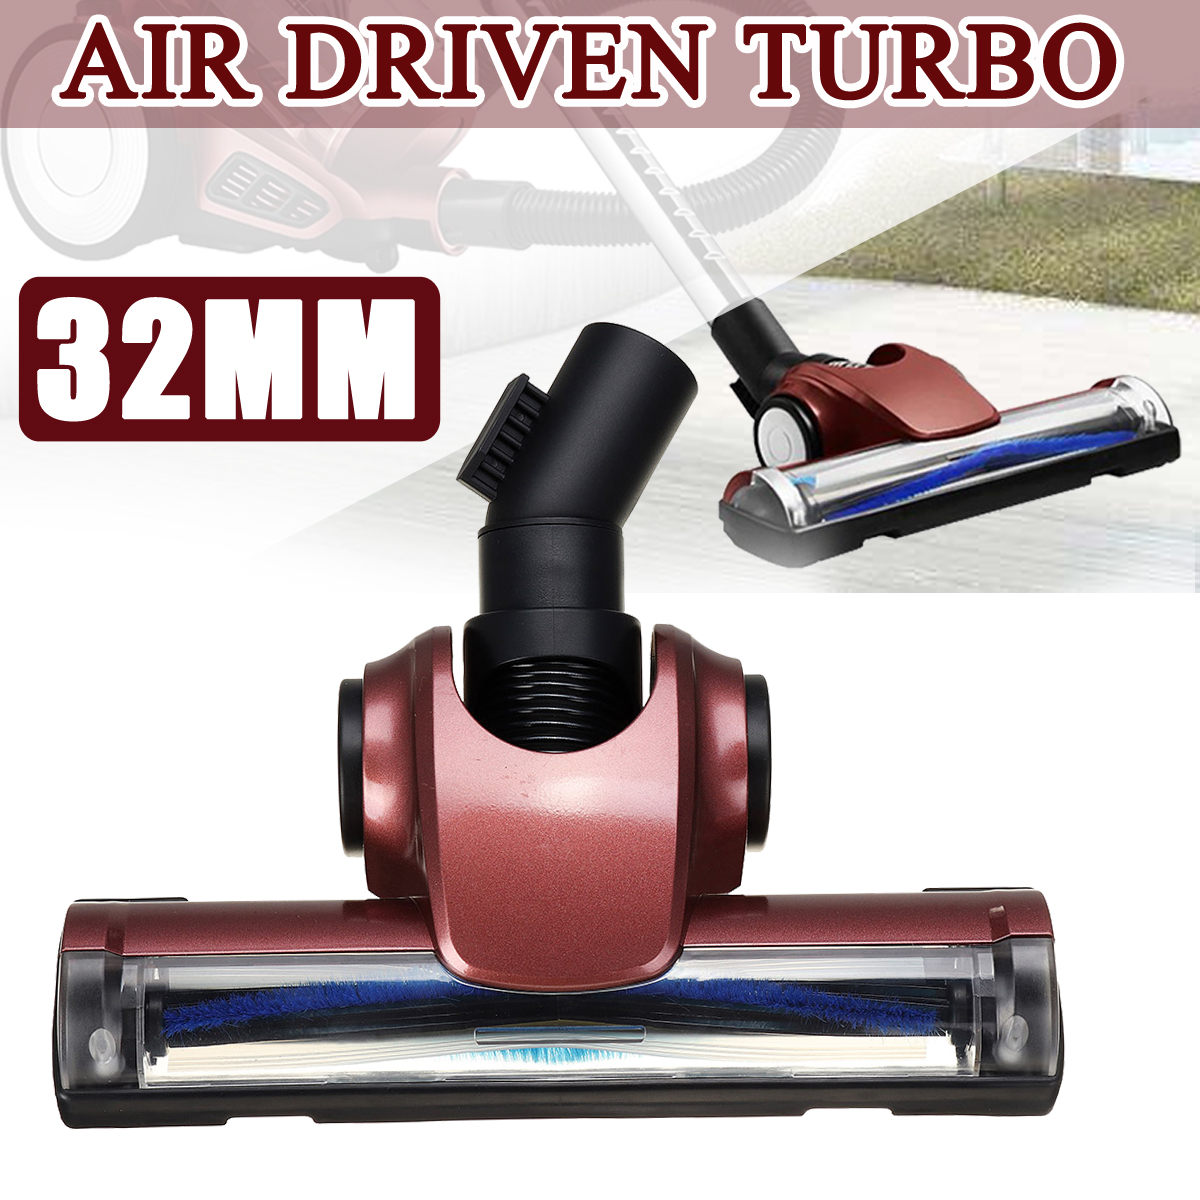 32mm Universal Vacuum Cleaner Brush Floor Cleaner Head Air Driven Vacuum Turbo Carpet Brush For Dyson DC52 DC58 DC59 V6 DC62